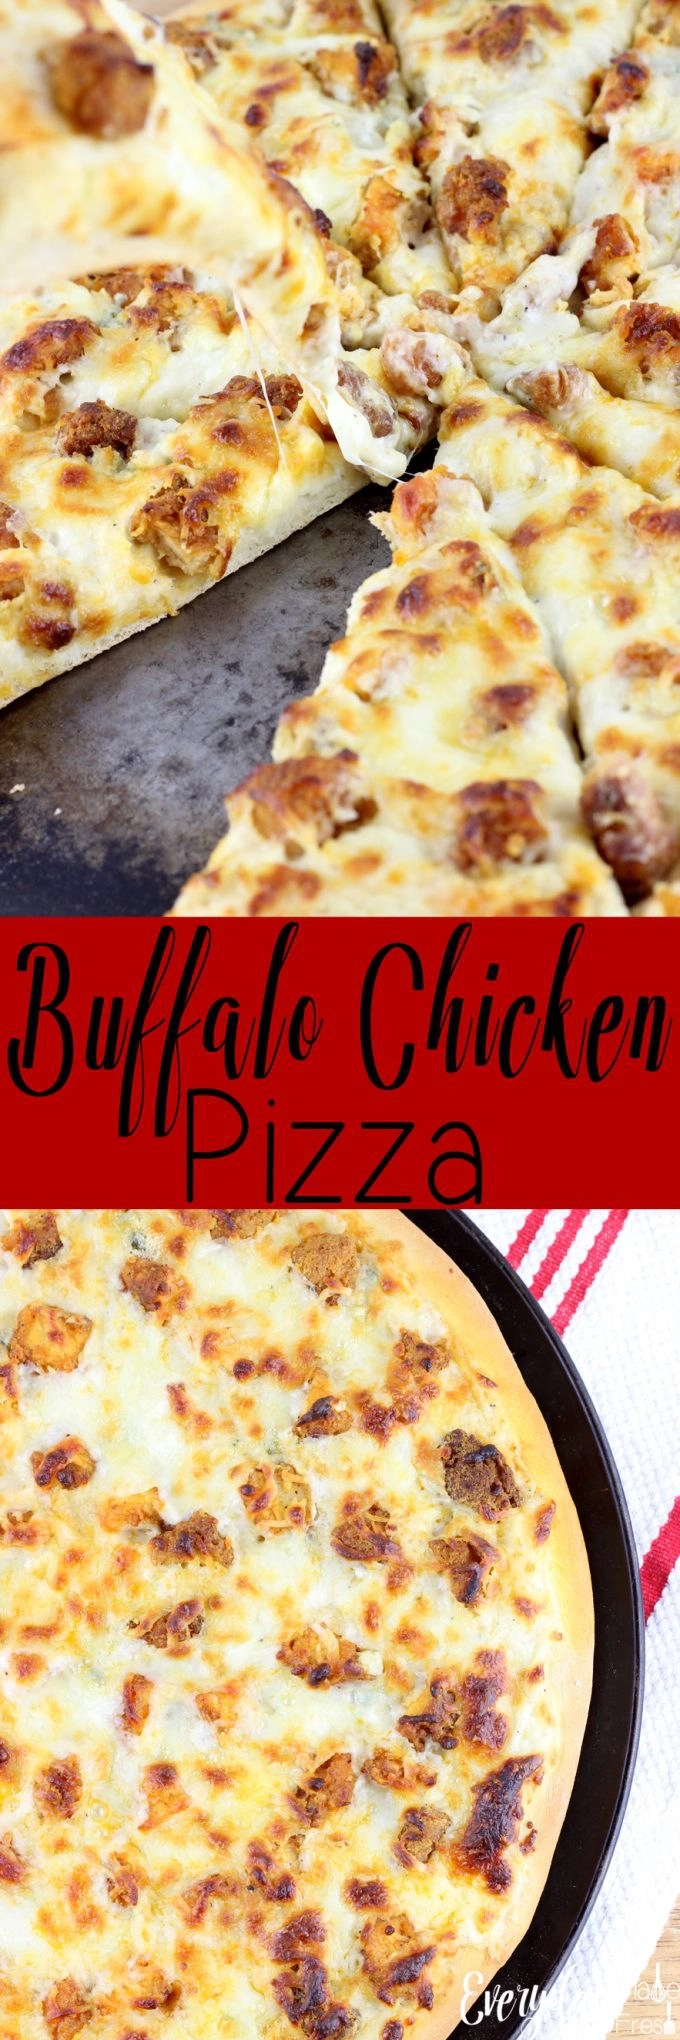 This Buffalo Chicken Pizza is simple and delicious! Enjoy one of your favorite pizzas at home, with this simple, no-rise crust.  EverydayMadeFresh.com